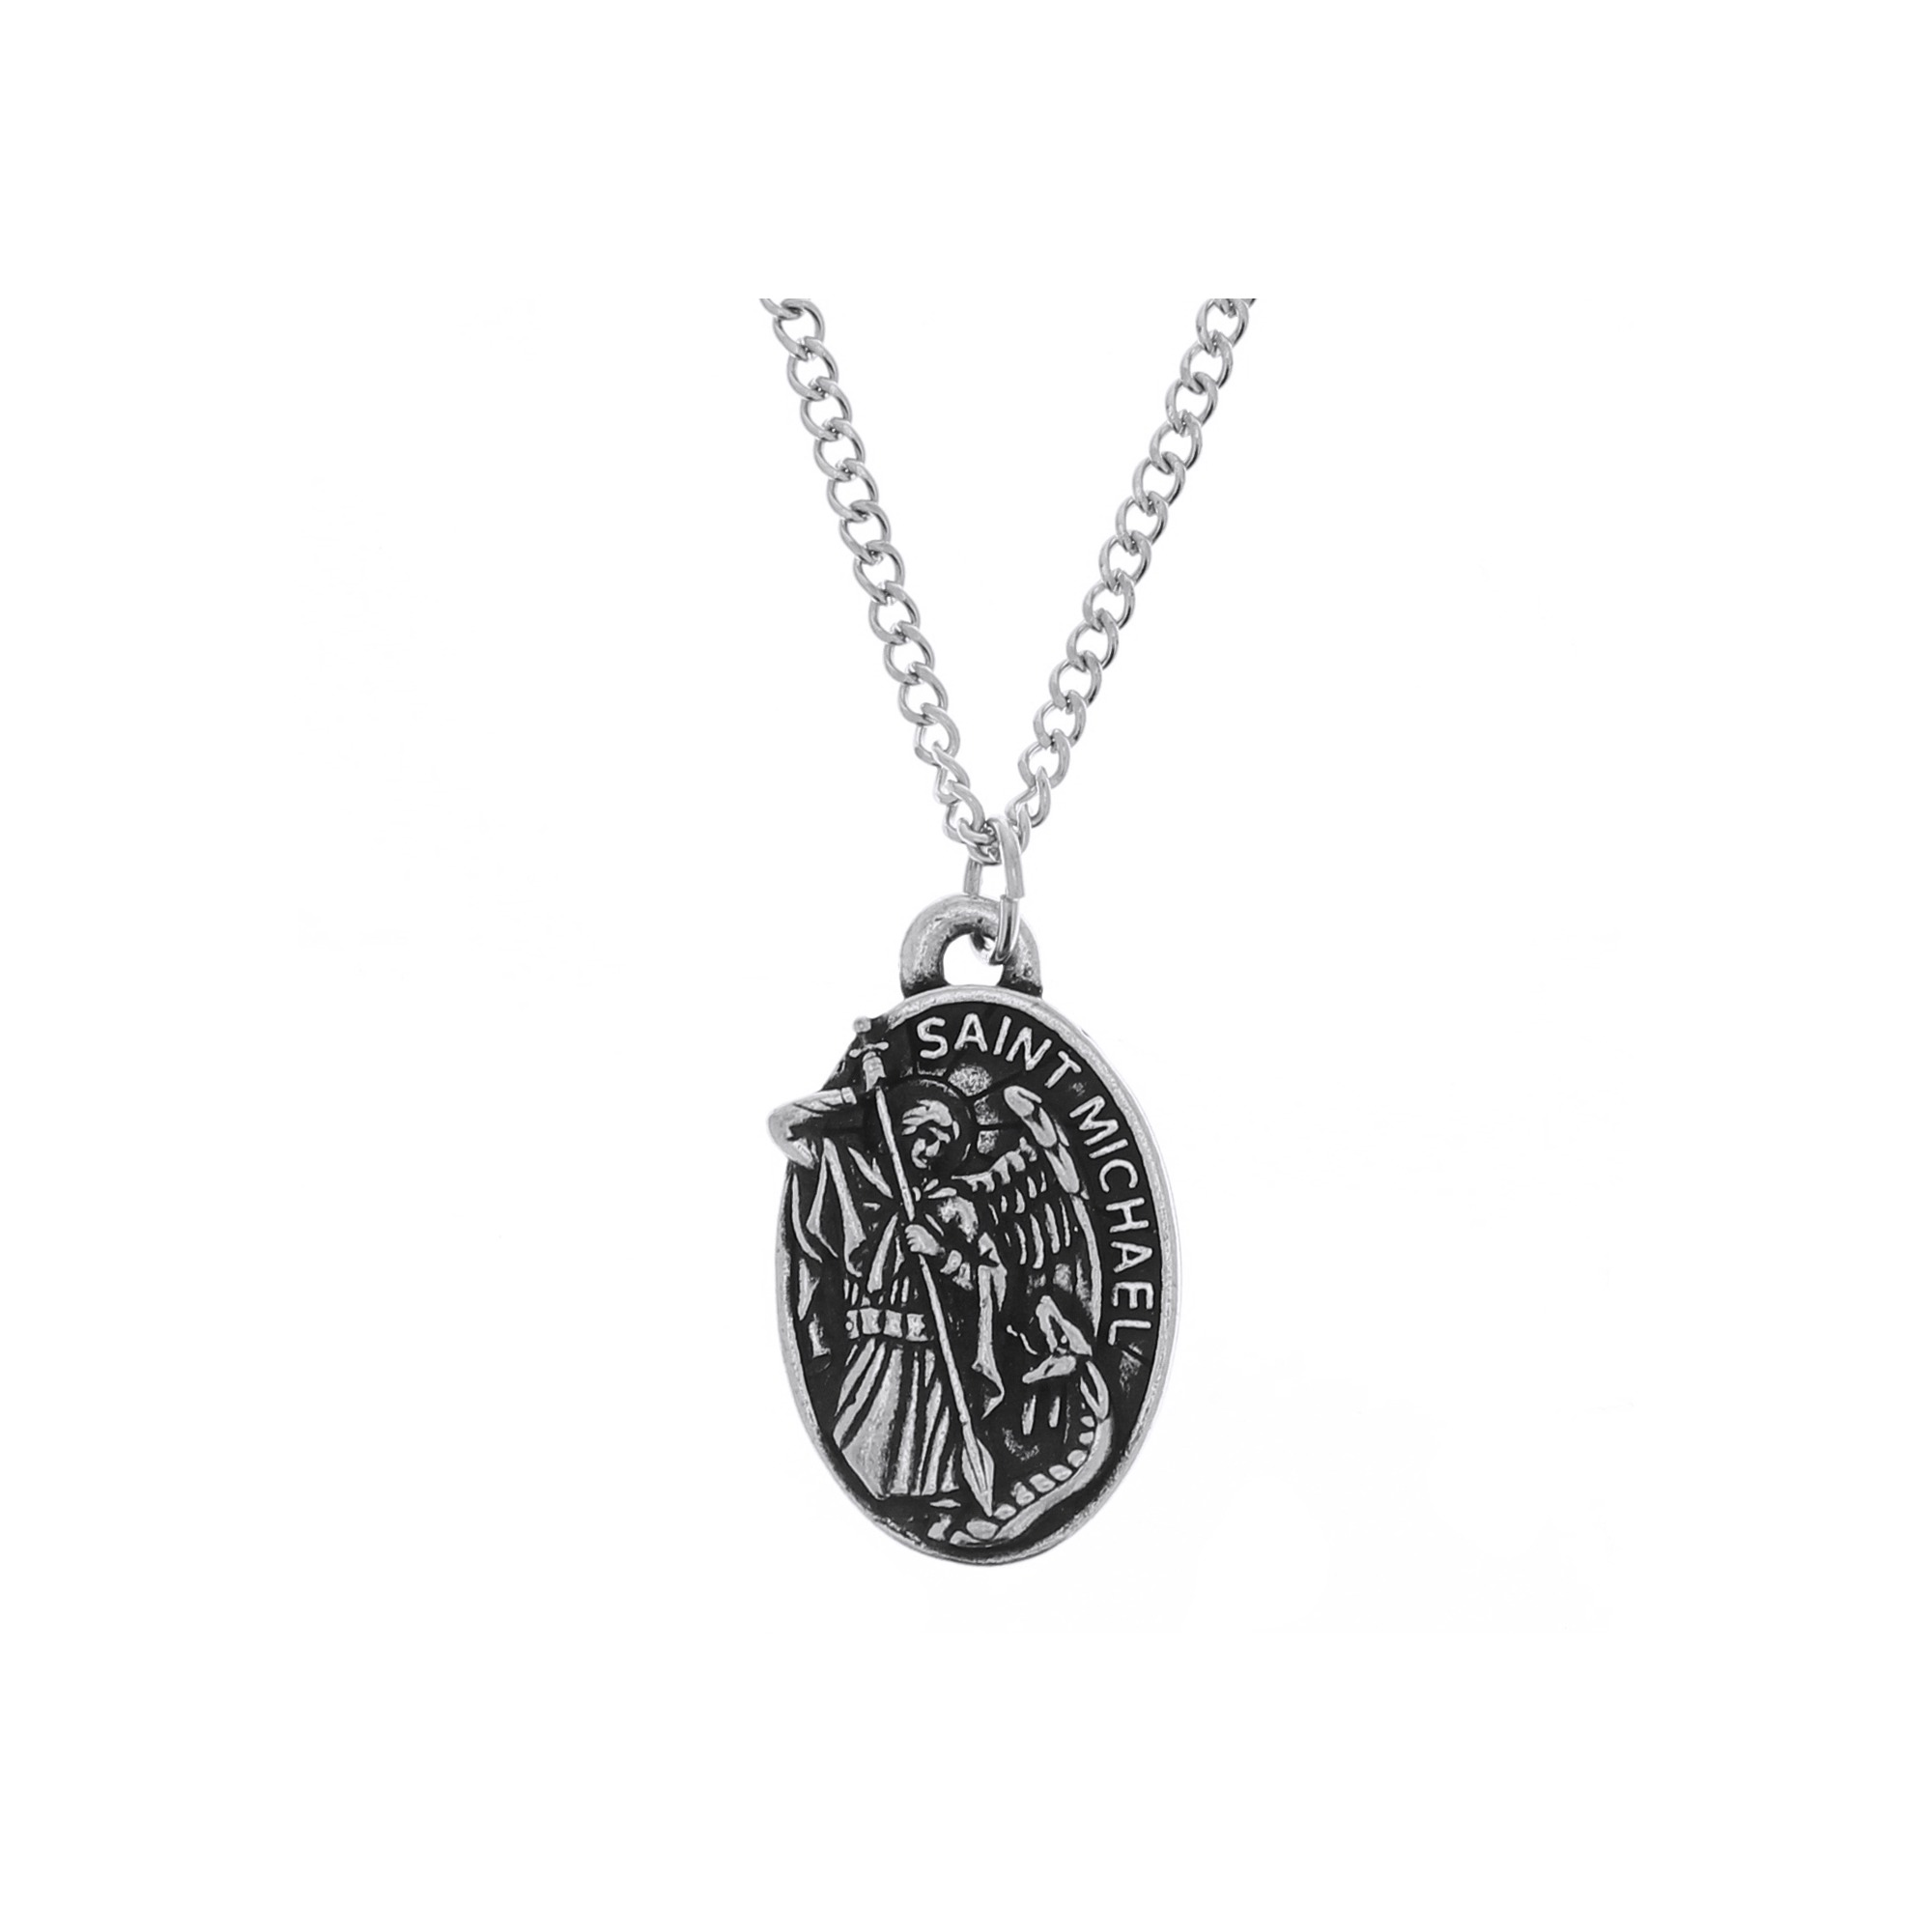 catholic necklace company cross pendant may restrictions rope the pewter apply